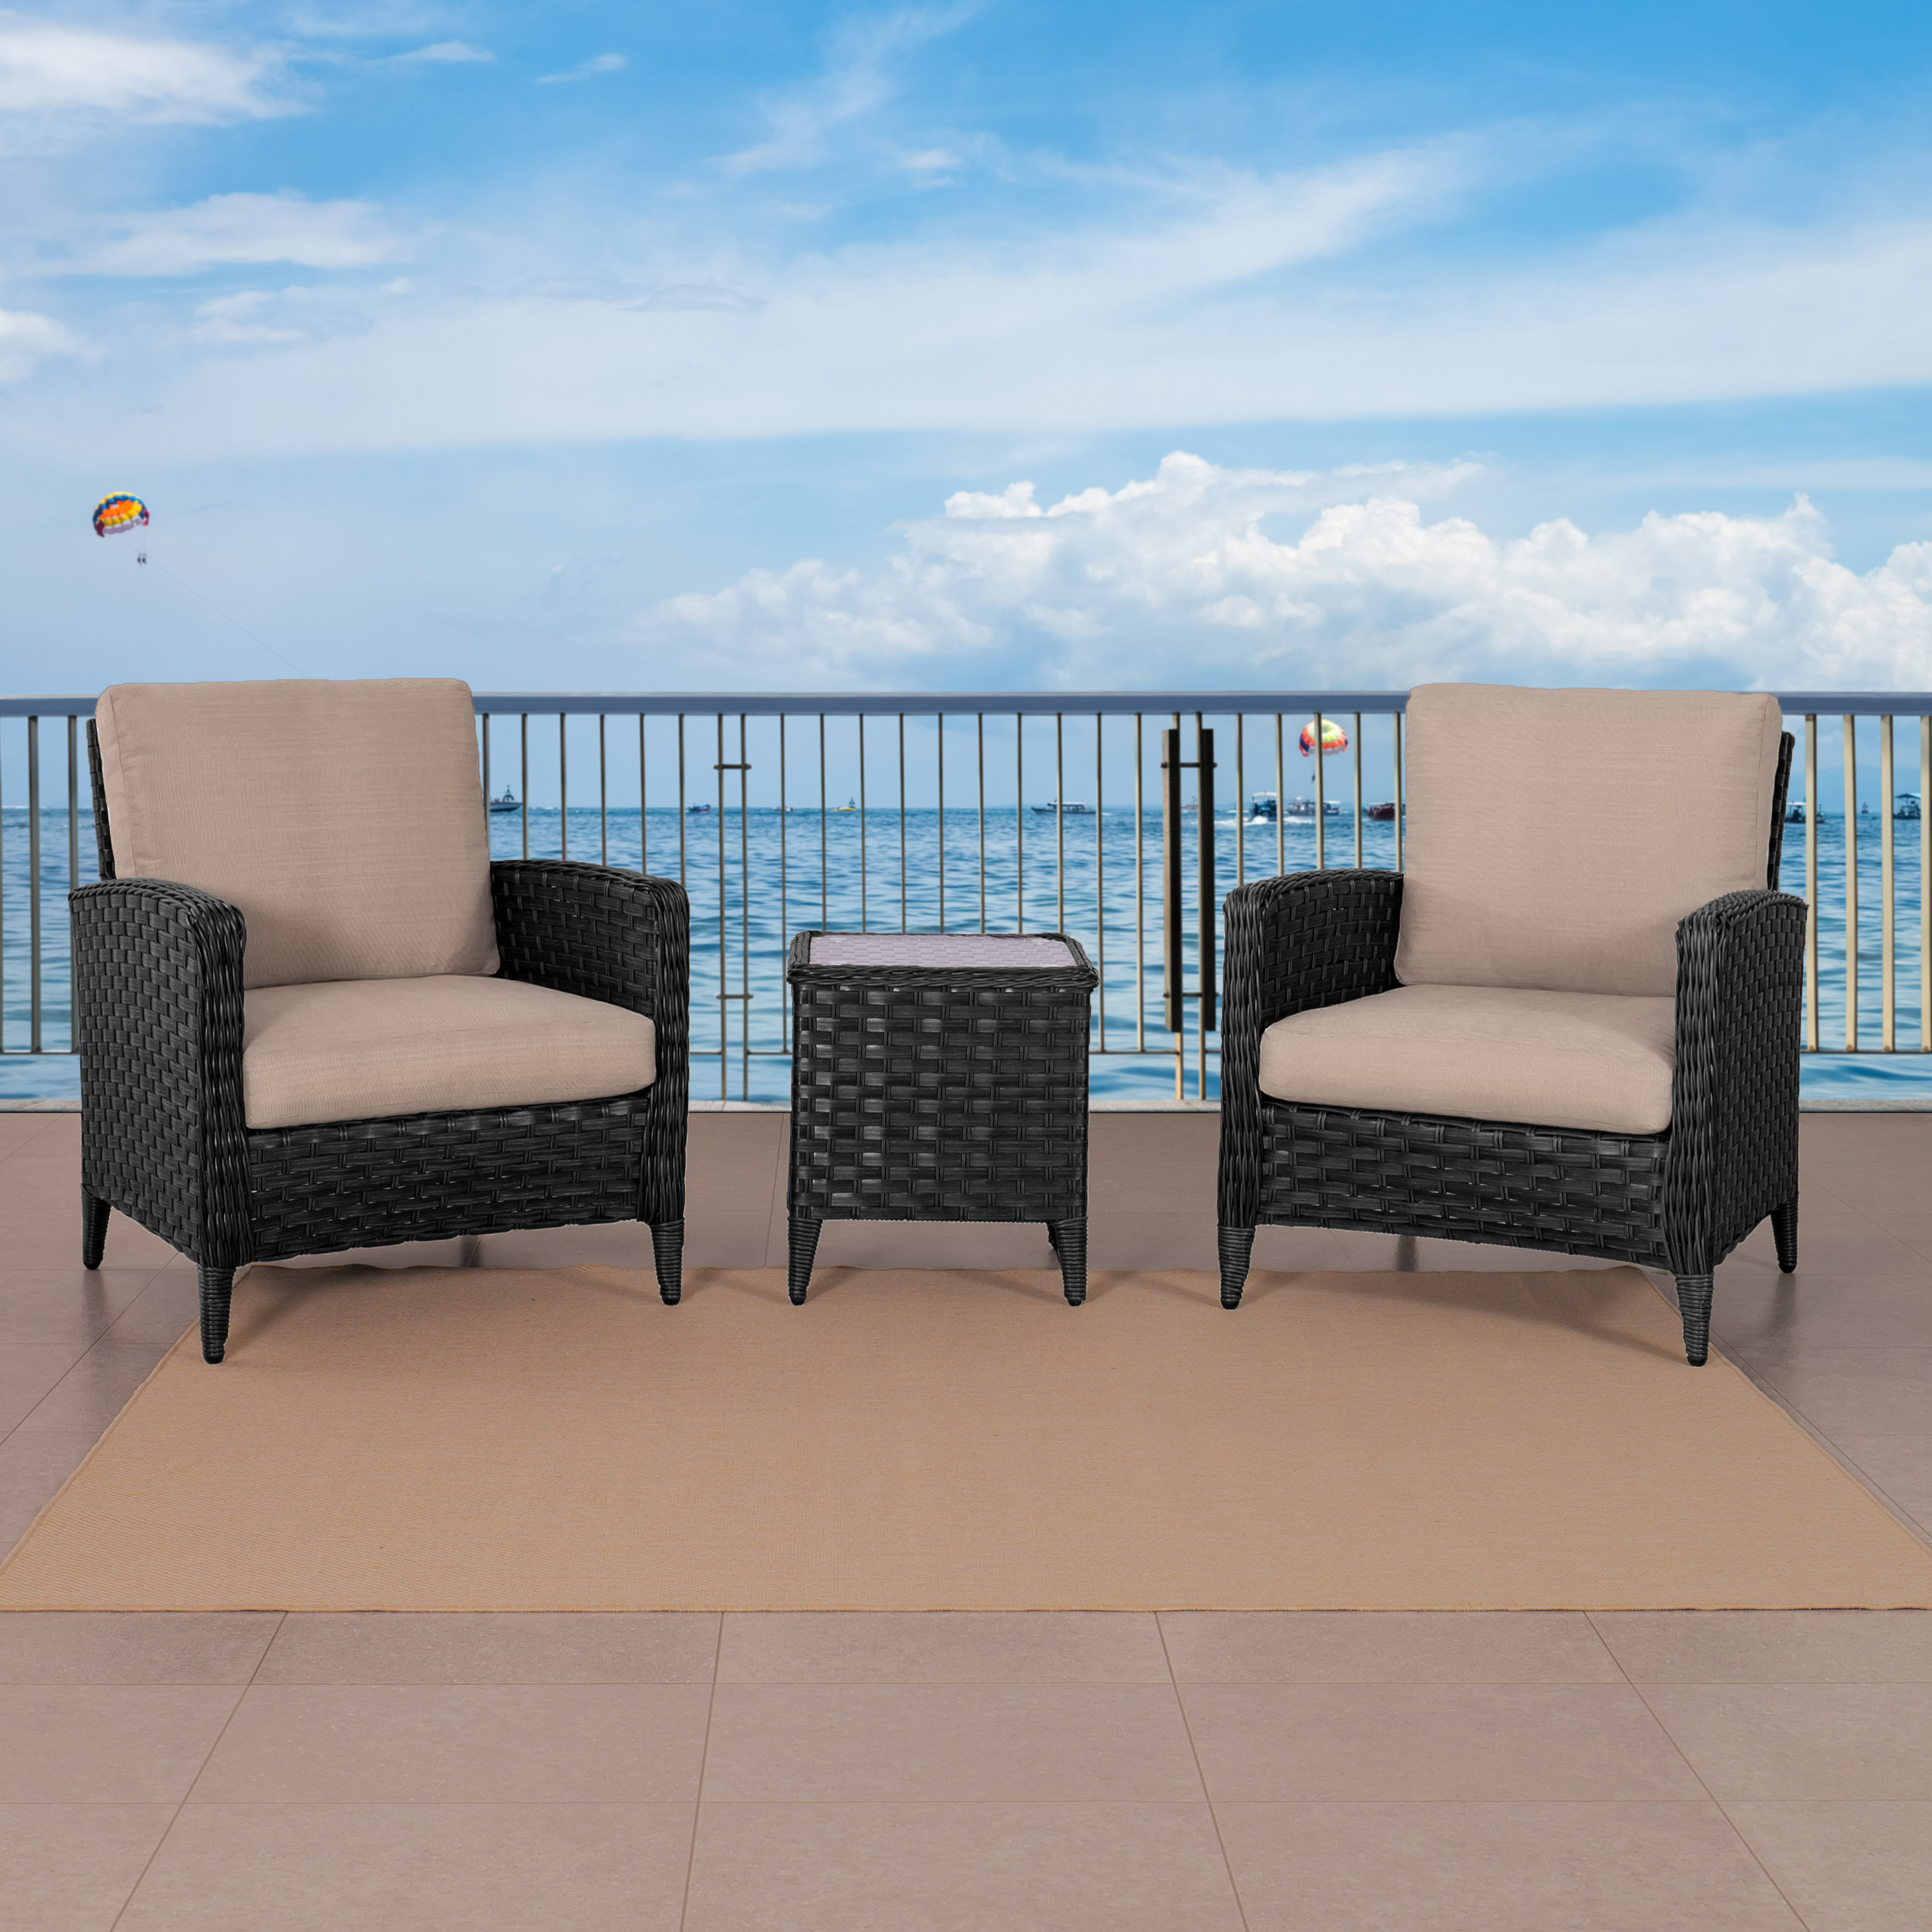 3pc Distressed Charcoal Grey Wide Rattan Wicker Patio Chair Set with End Table - Walmart.com & 3pc Distressed Charcoal Grey Wide Rattan Wicker Patio Chair Set with ...